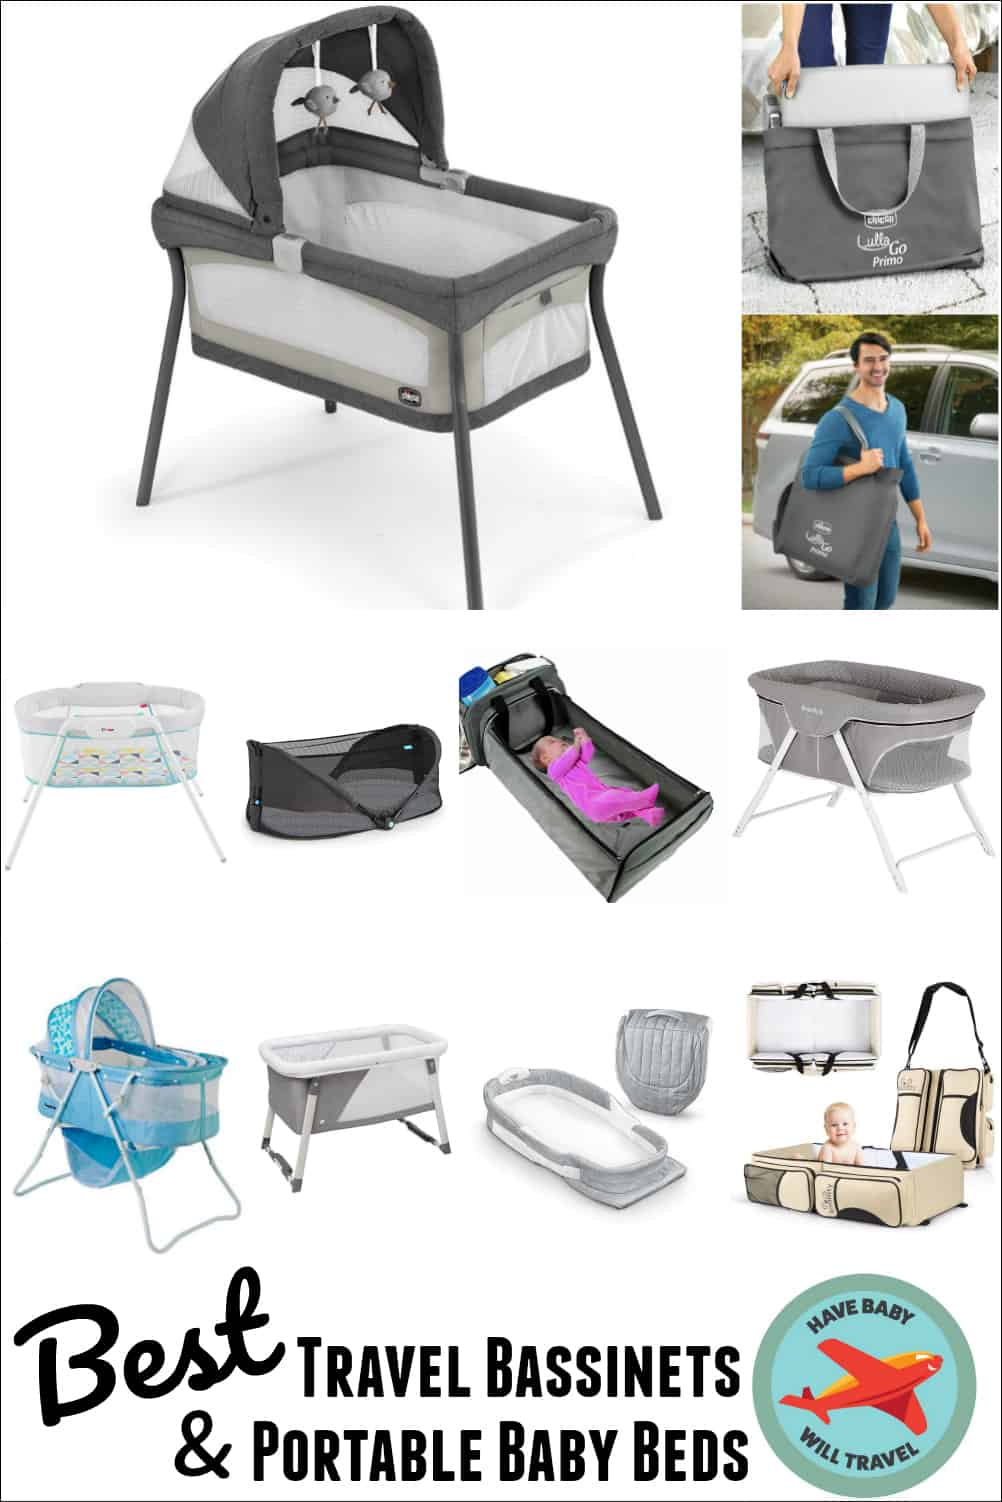 Newborn Bassinet Best Best Travel Bassinet Portable Baby Bed Options Have Baby